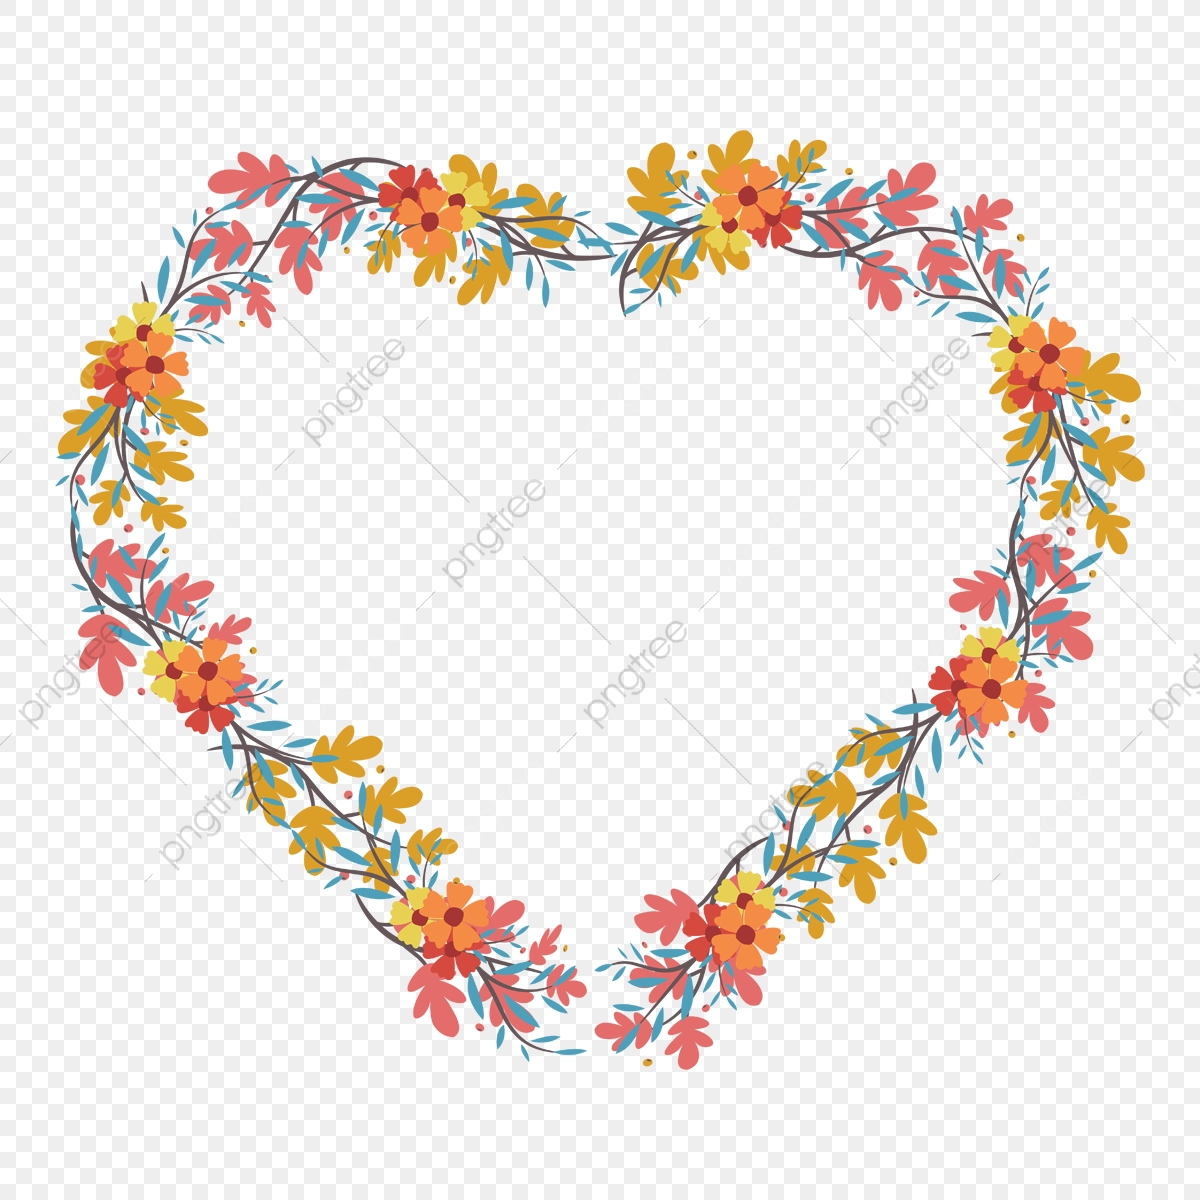 Flower and heart wreath clipart. Flat shape of vector